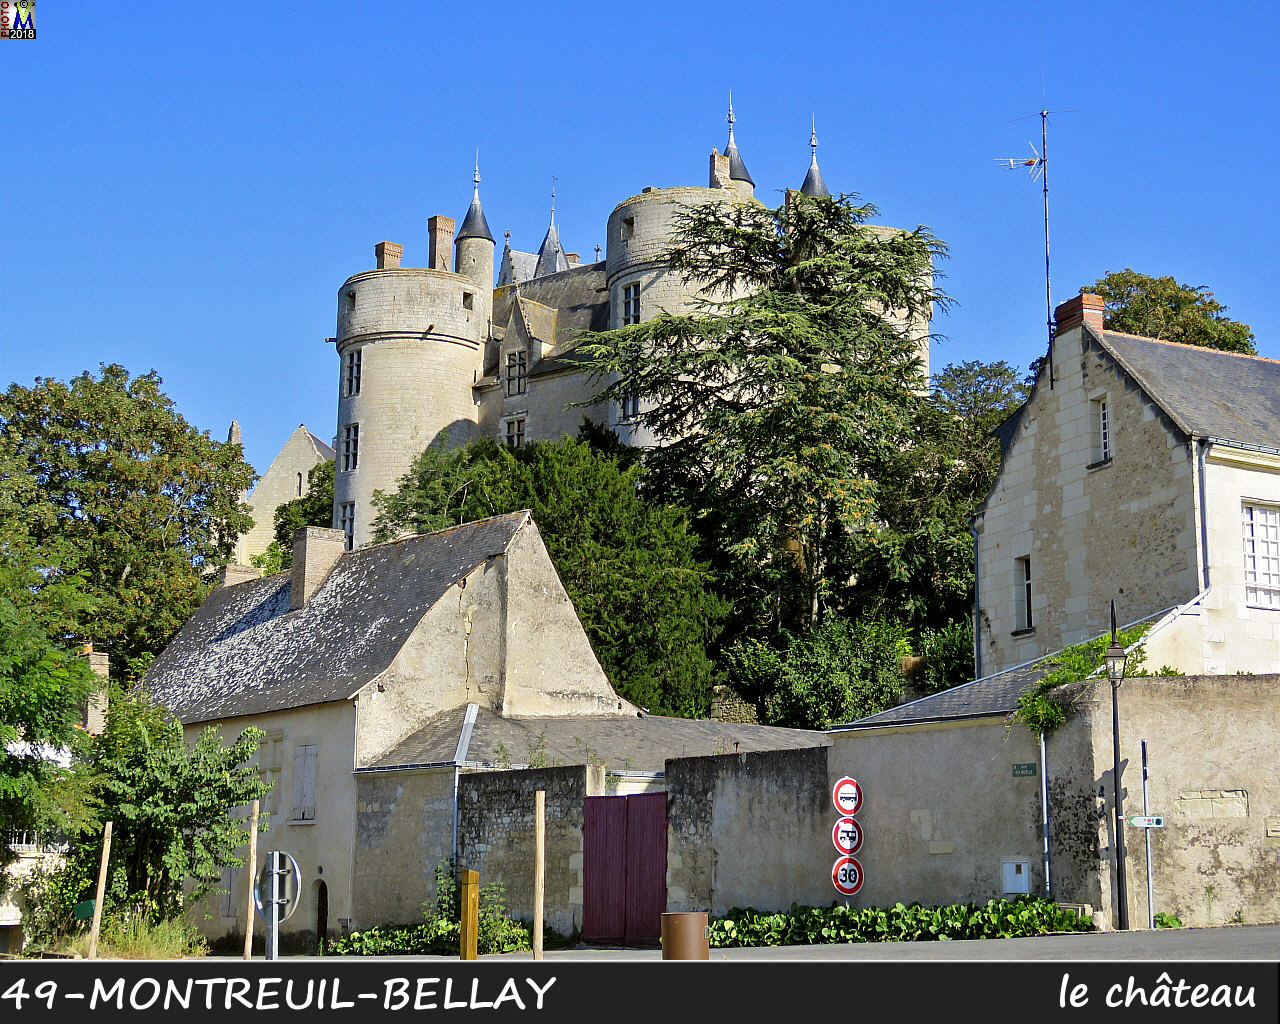 49MONTREUIL-BELLAY_chateau_1048.jpg